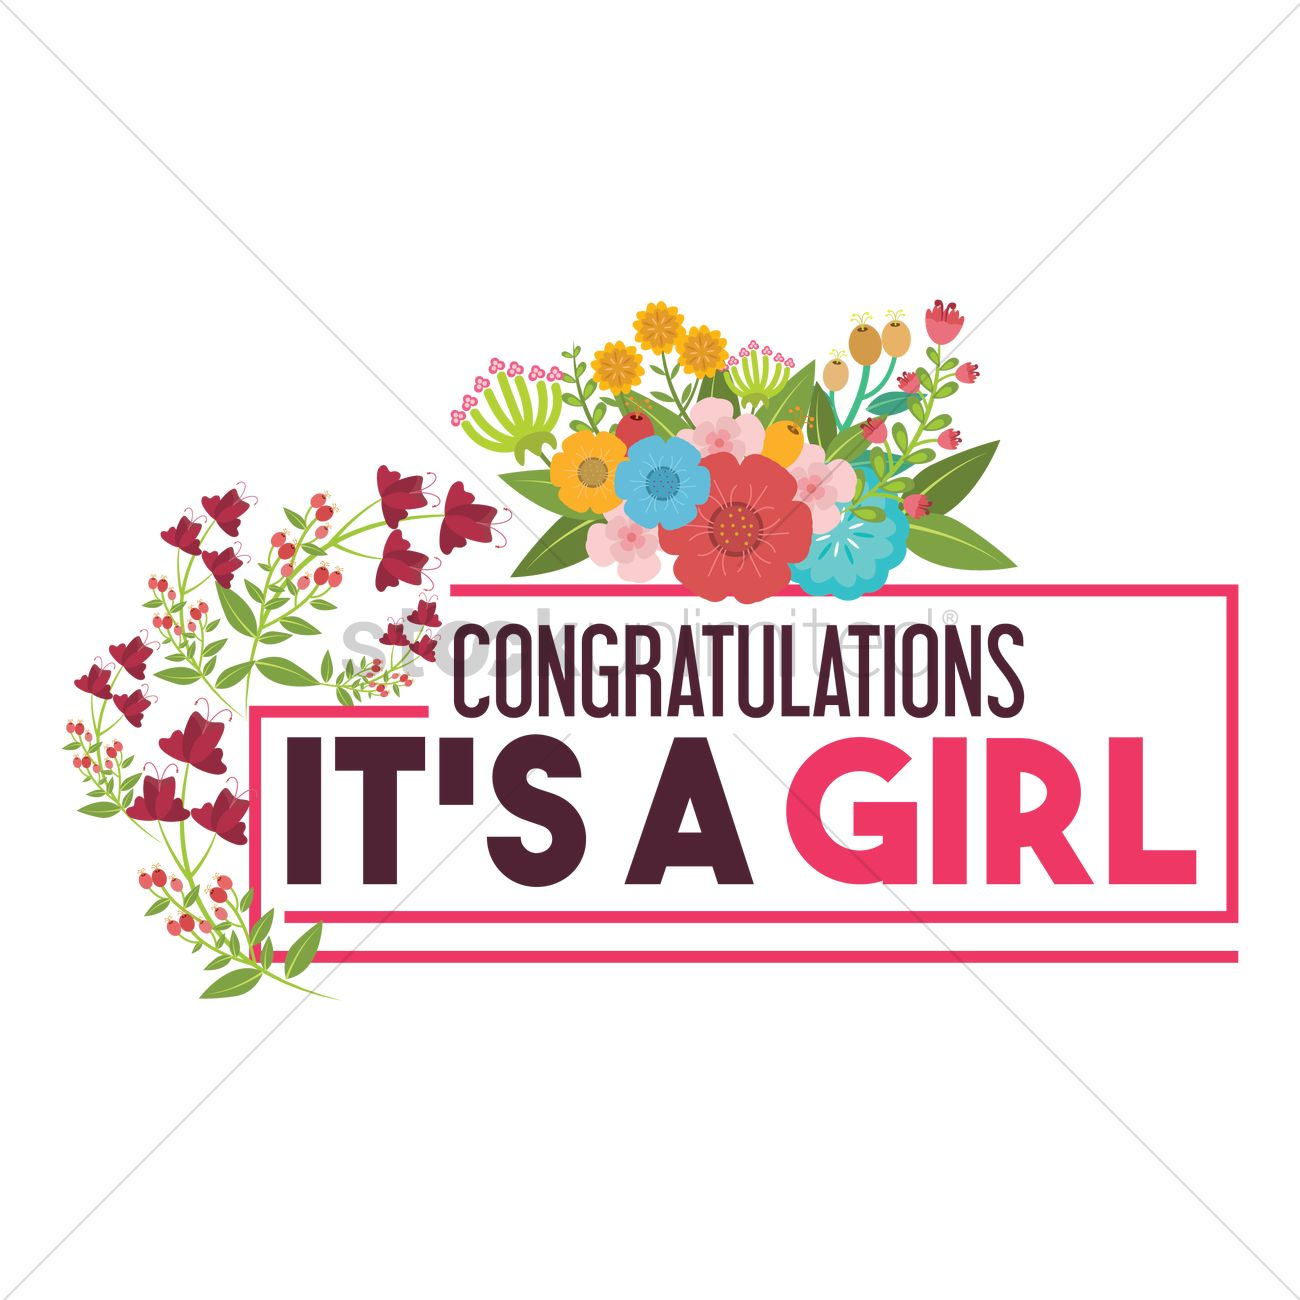 Congratulations its a girl Vector Image - 1797299 ...